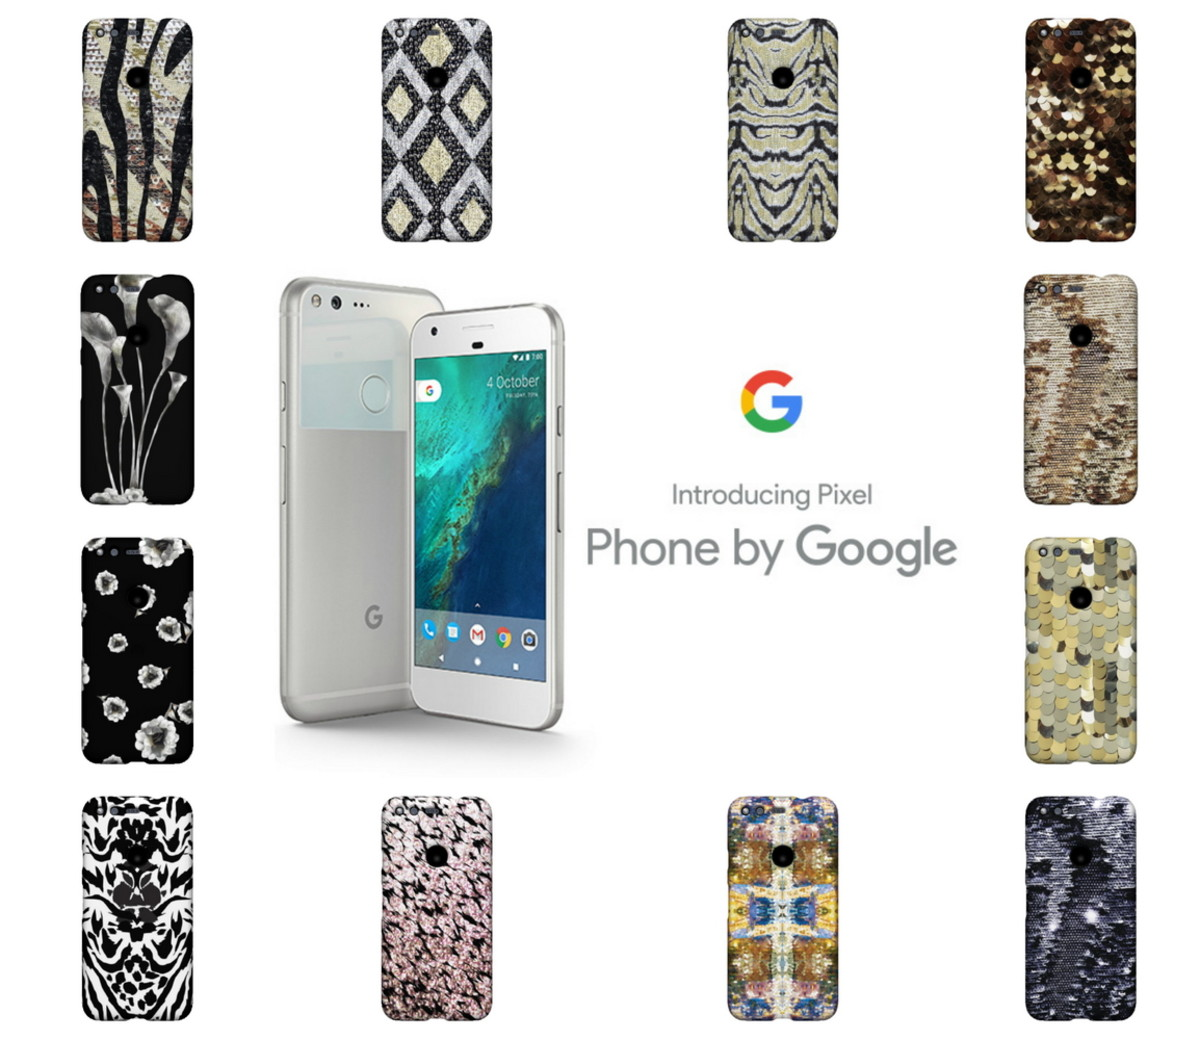 12 Rachel Zoe Live Case designs to choose from and only available for Google phones.